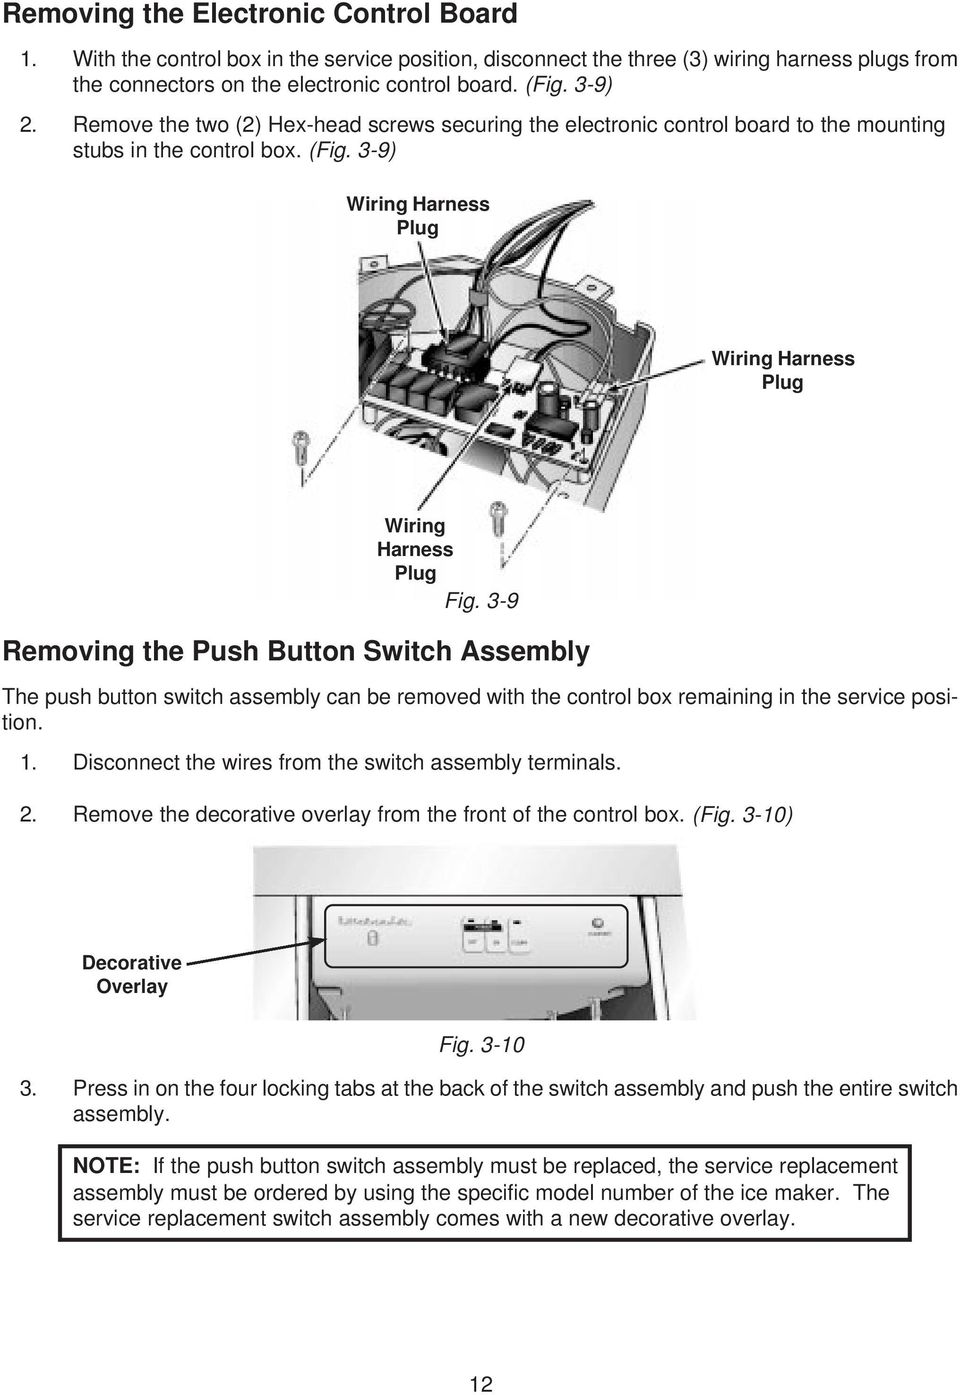 Section One Installation Considerations Pdf Ice Maker Circuit Board Wiring Diagram 3 9 Removing The Push Button Switch Assembly Can Be